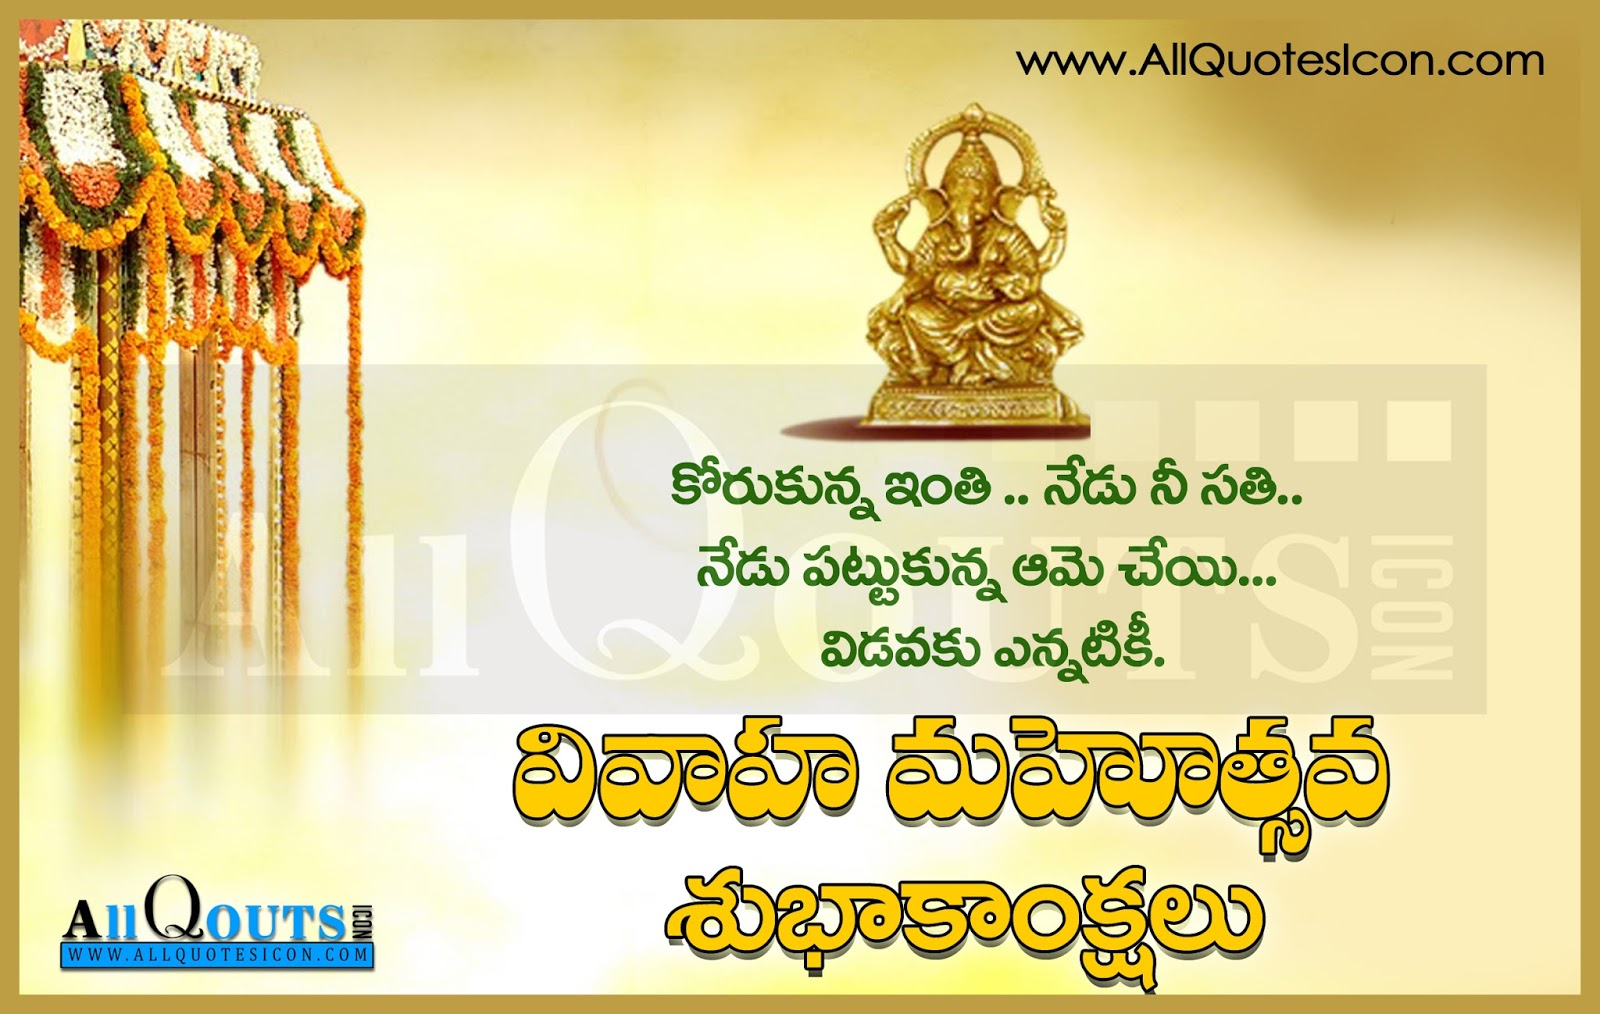 Happy Marriage Day Quotes In Telugu Hd Wallpapers Best Marriage Day